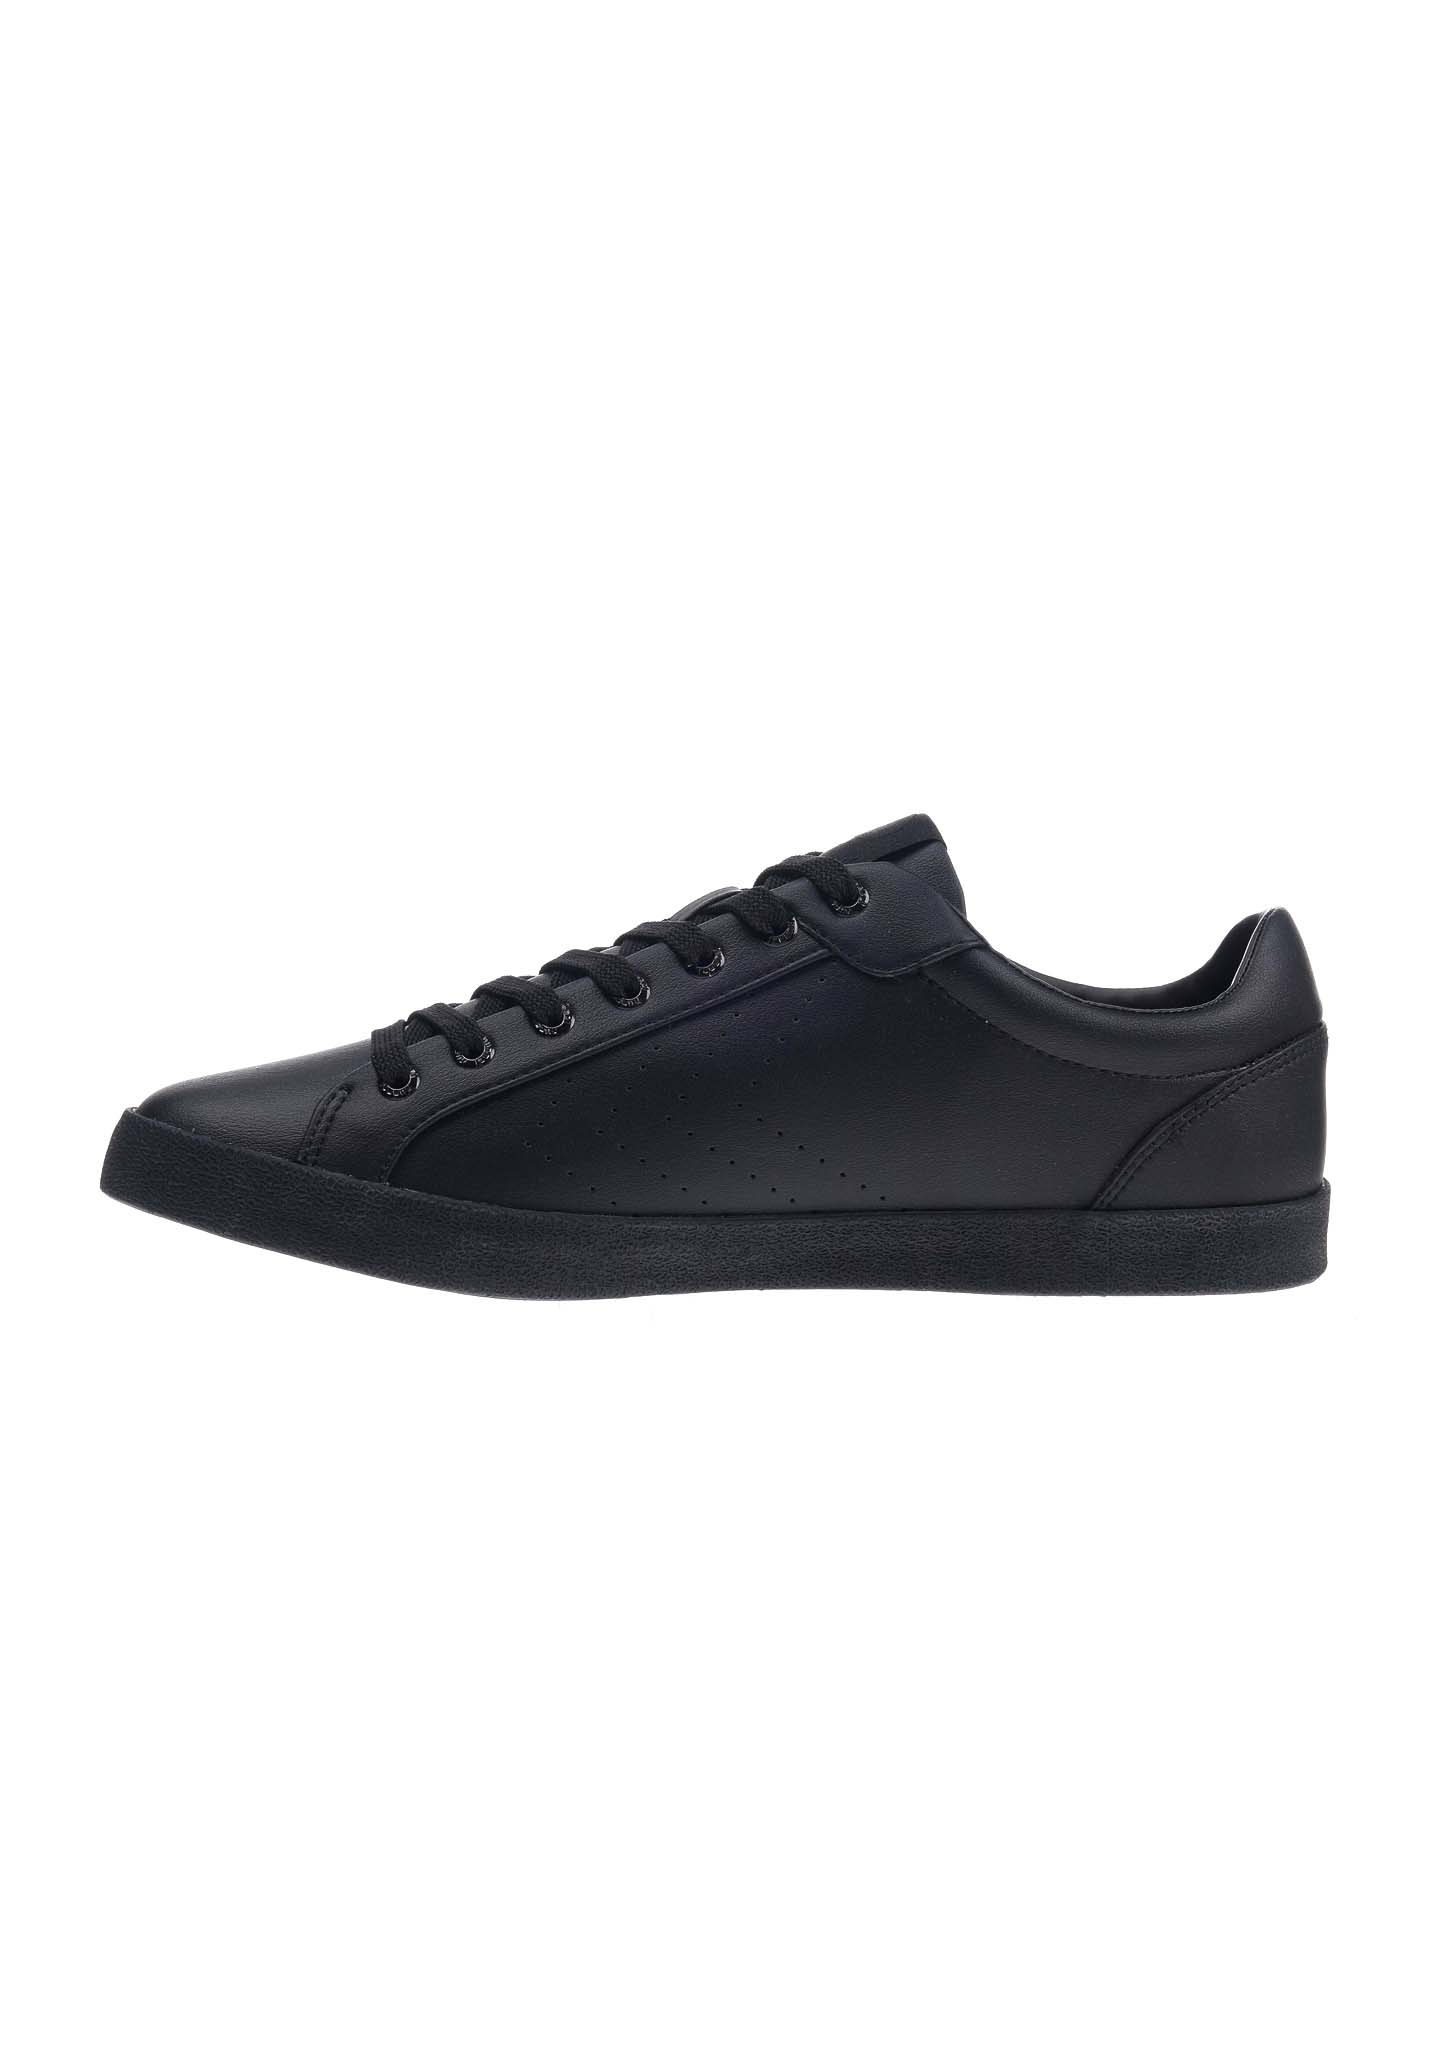 hummel deuce court tonal herren damen sneaker turnschuhe freizeit schuhe. Black Bedroom Furniture Sets. Home Design Ideas